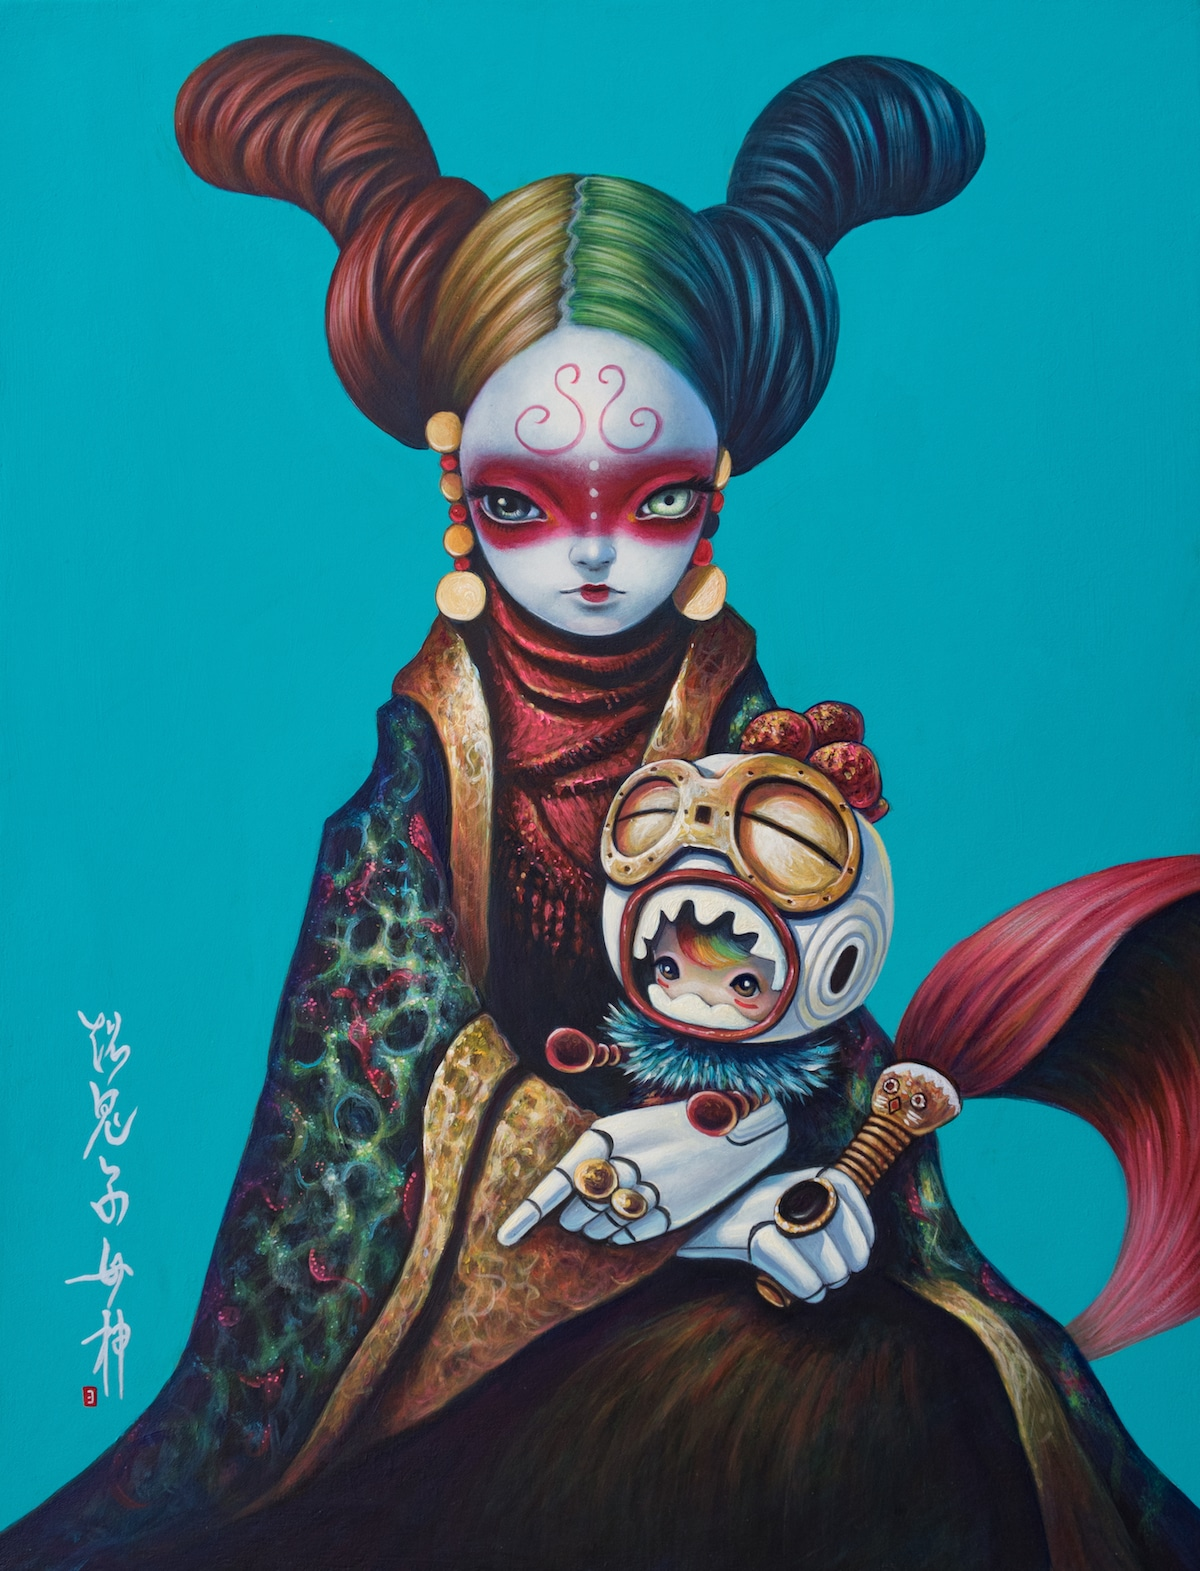 mother-and-child-art-dorothy-circus-gallery-8.jpg